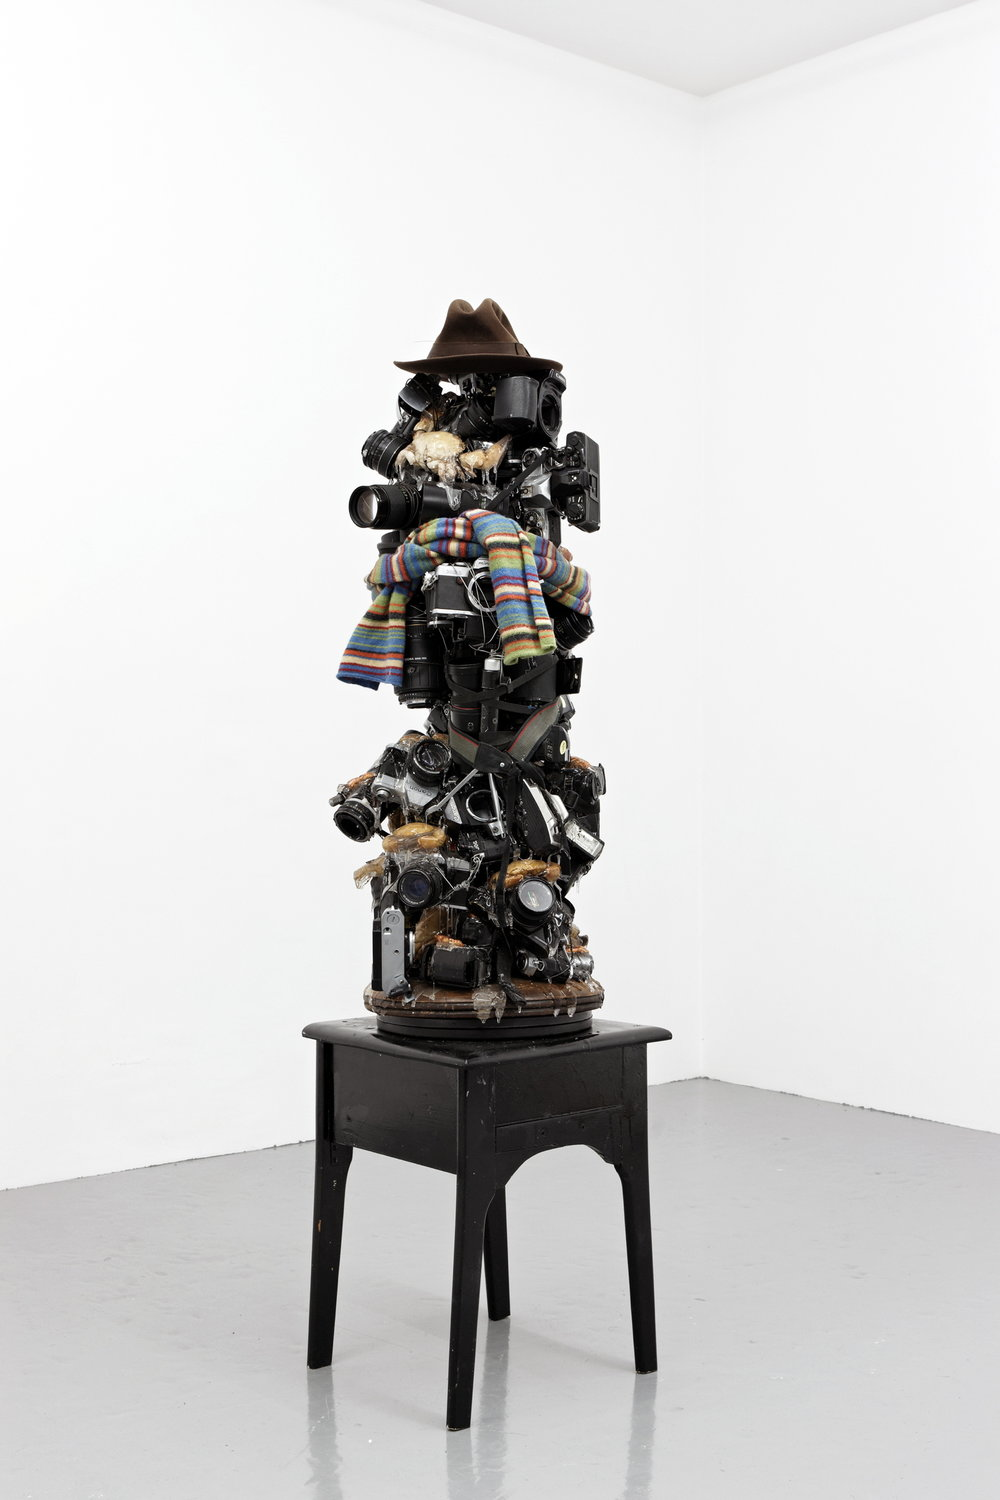 Justin Lieberman,  Tom Baker,  2010, cameras, hardware, taxidermy crabs, resin, hat and scarf, dimensions variable